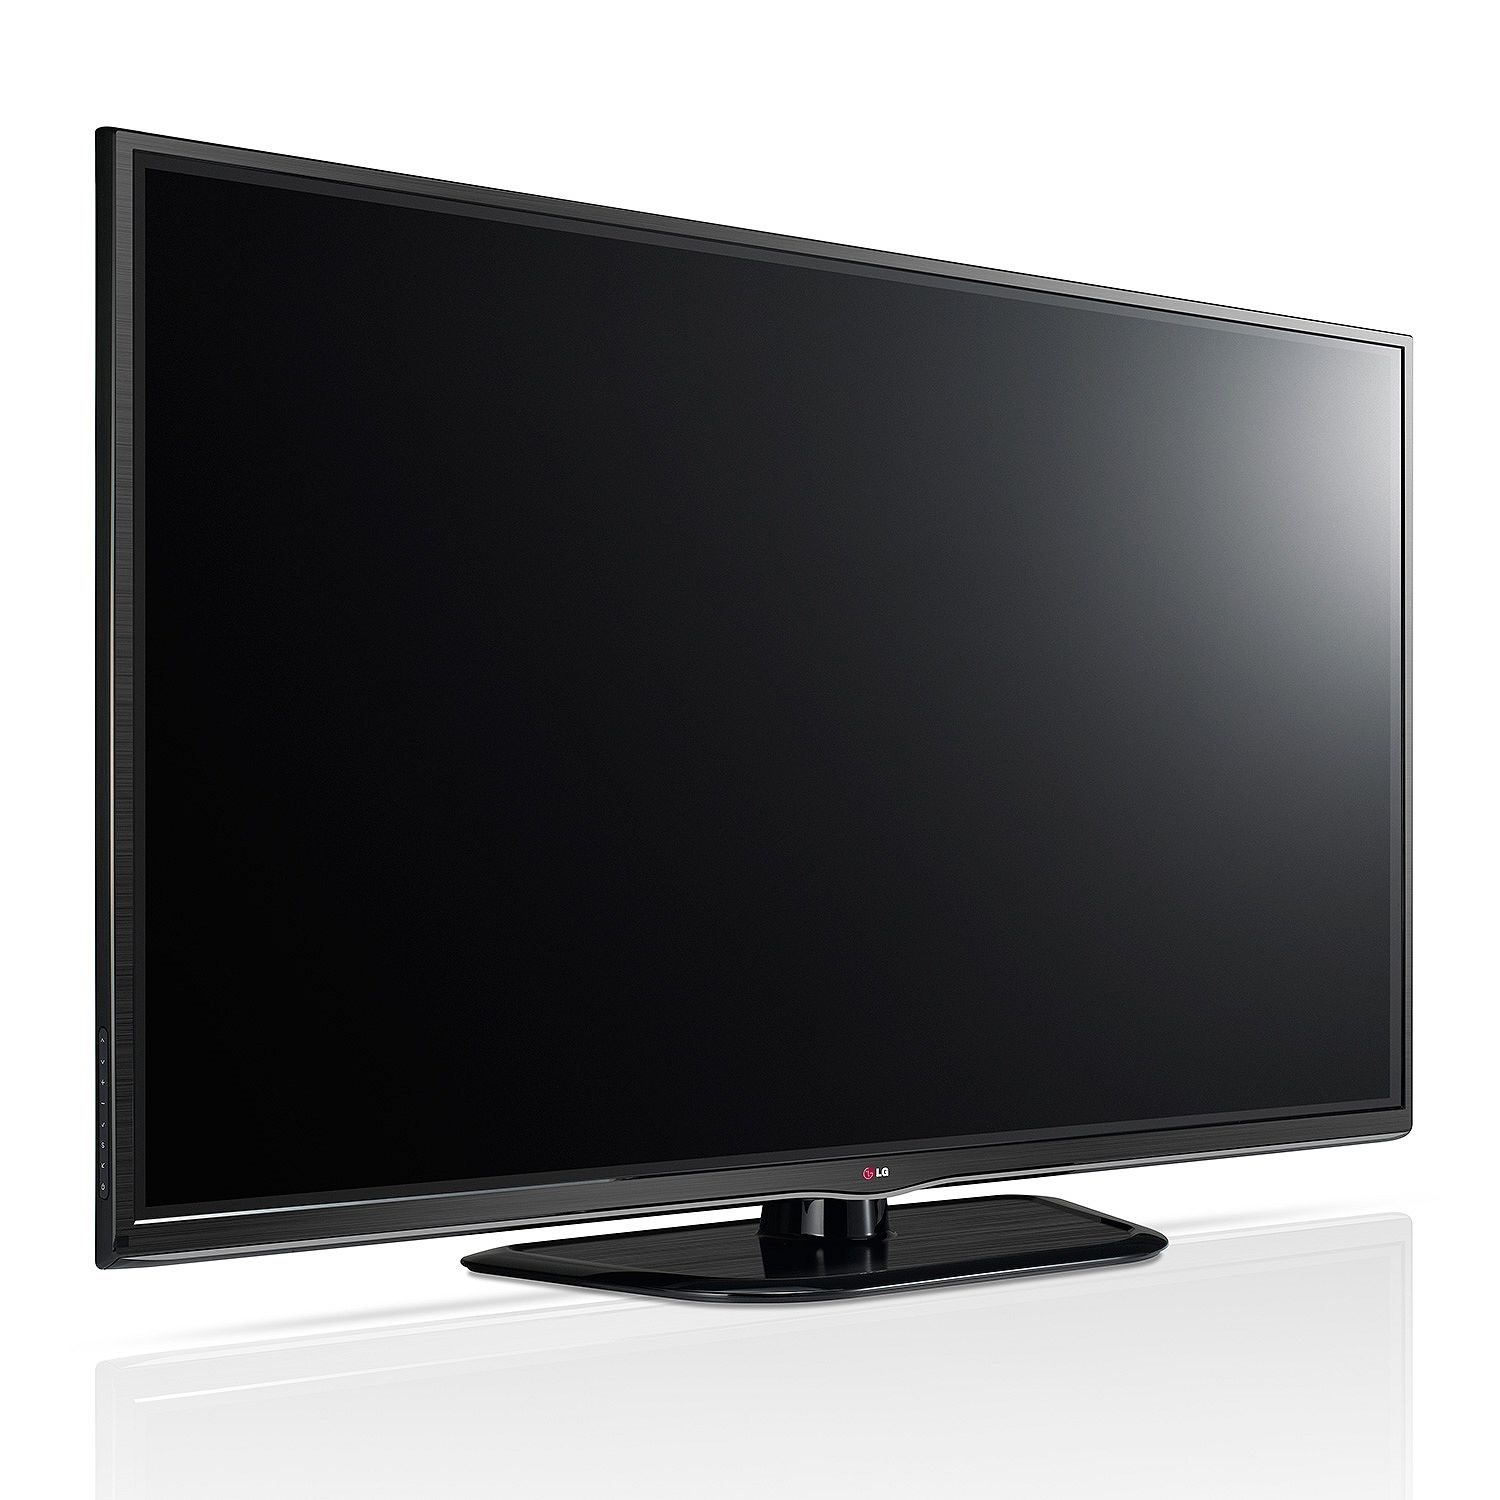 "LG 60PN6550 1080P 60"" PLASMA TV, BLACK (Certified )"